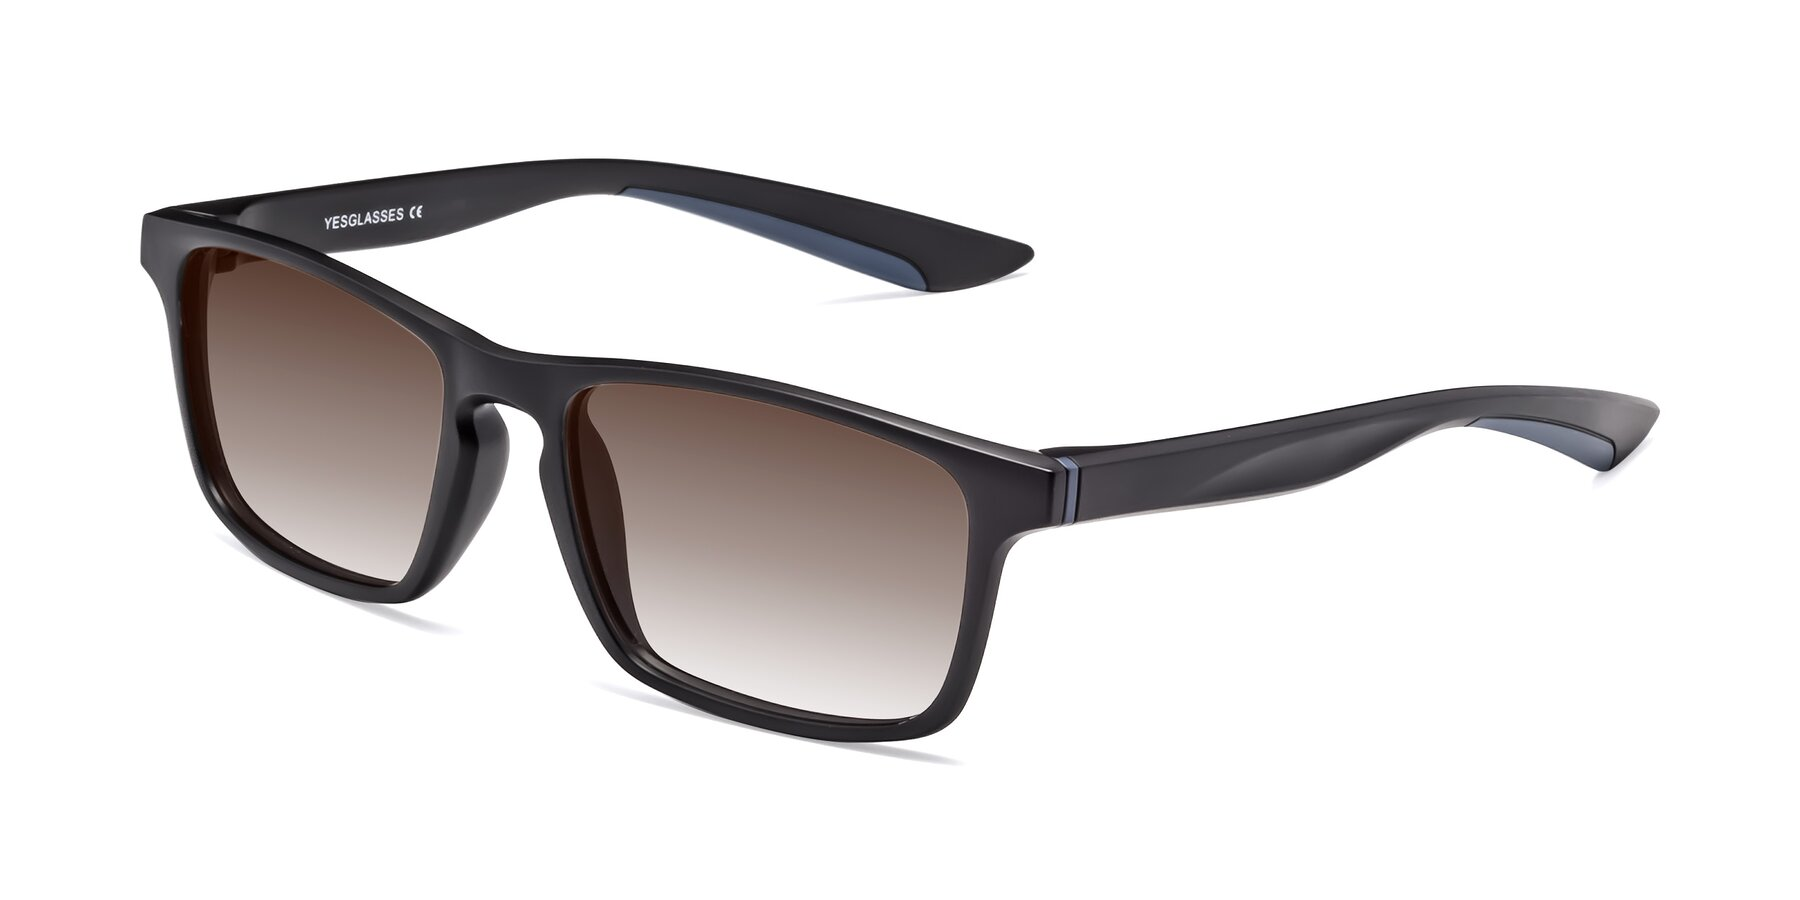 Angle of Passion in Matte Black-Blue with Brown Gradient Lenses